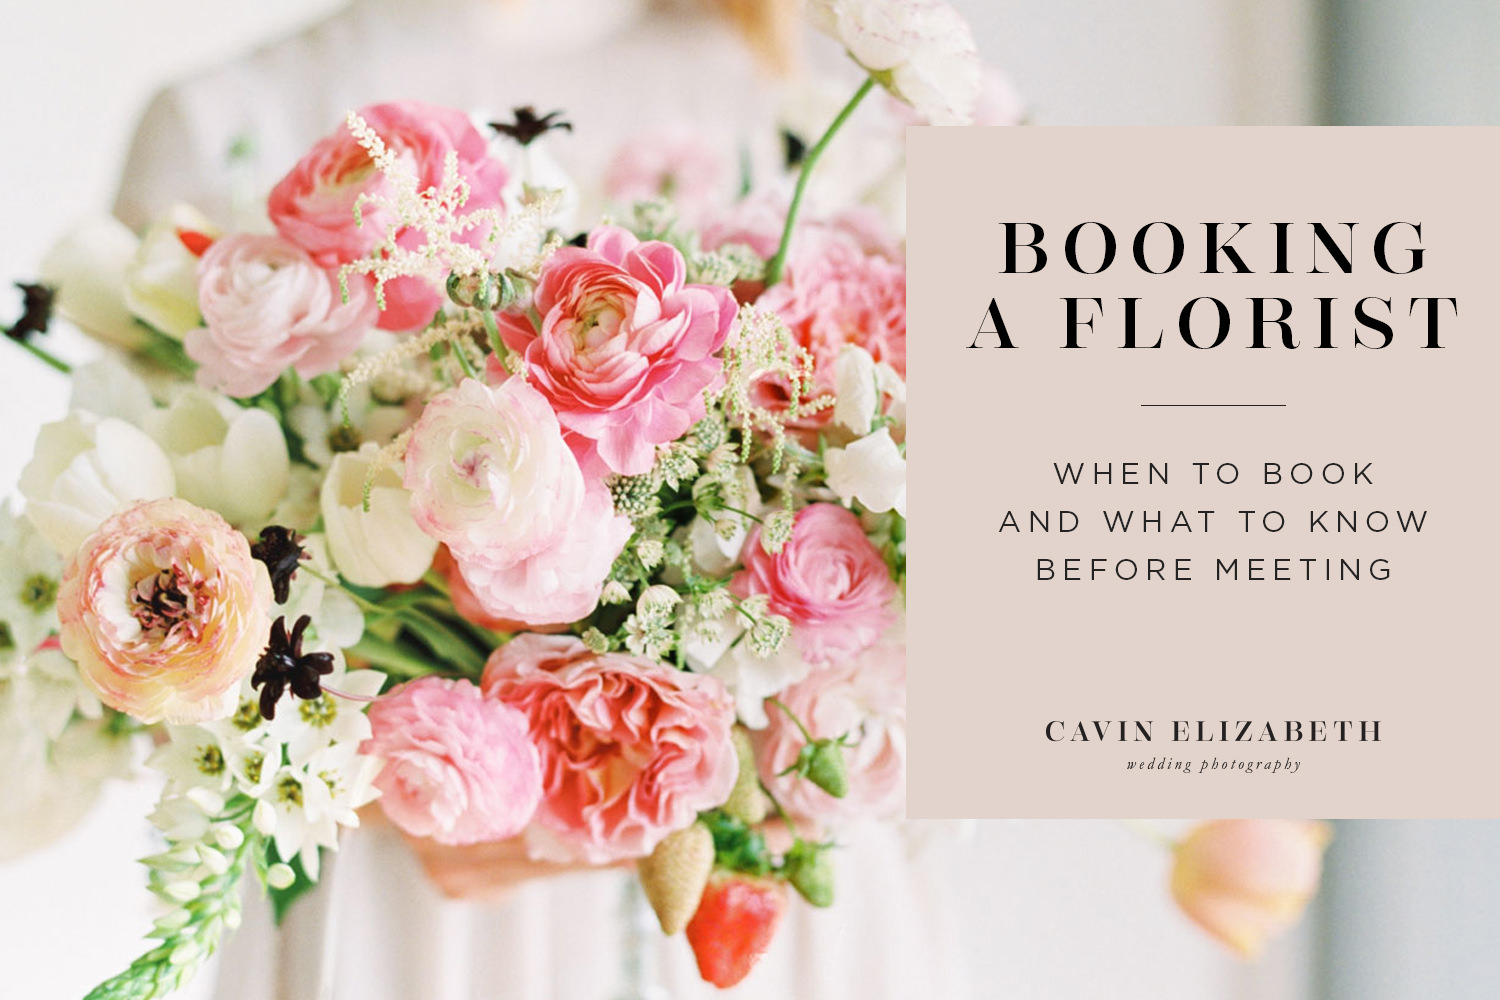 When to Book Your Wedding Florist & How to Prepare for the Consultation